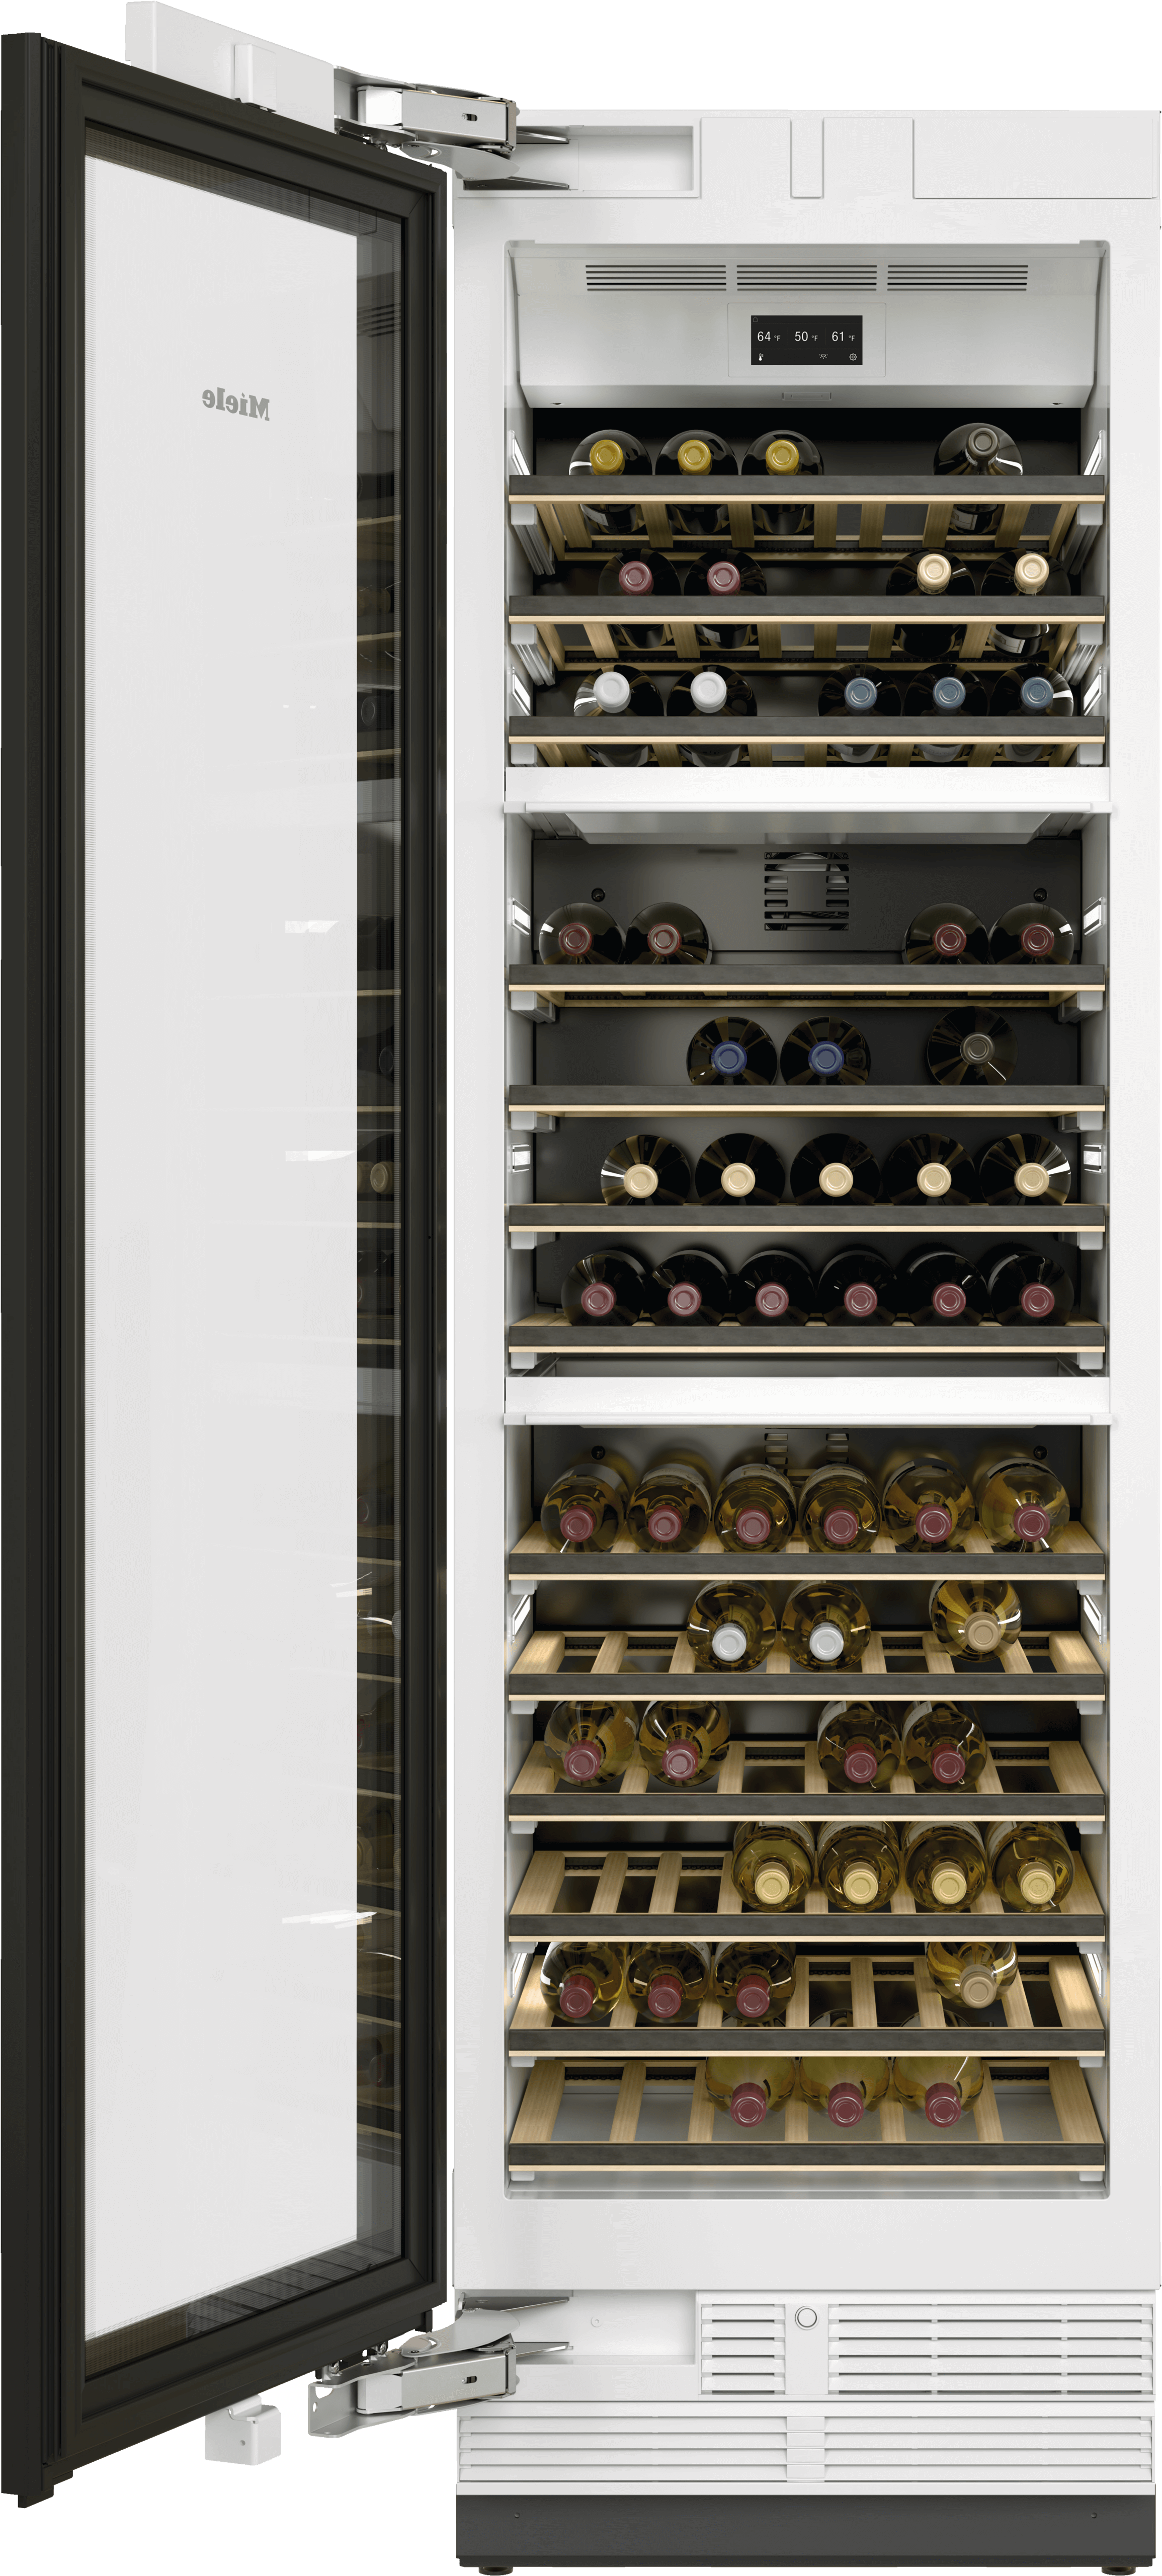 MieleKwt 2612 Vi - Mastercool Wine Conditioning Unit For High-End Design And Technology On A Large Scale.